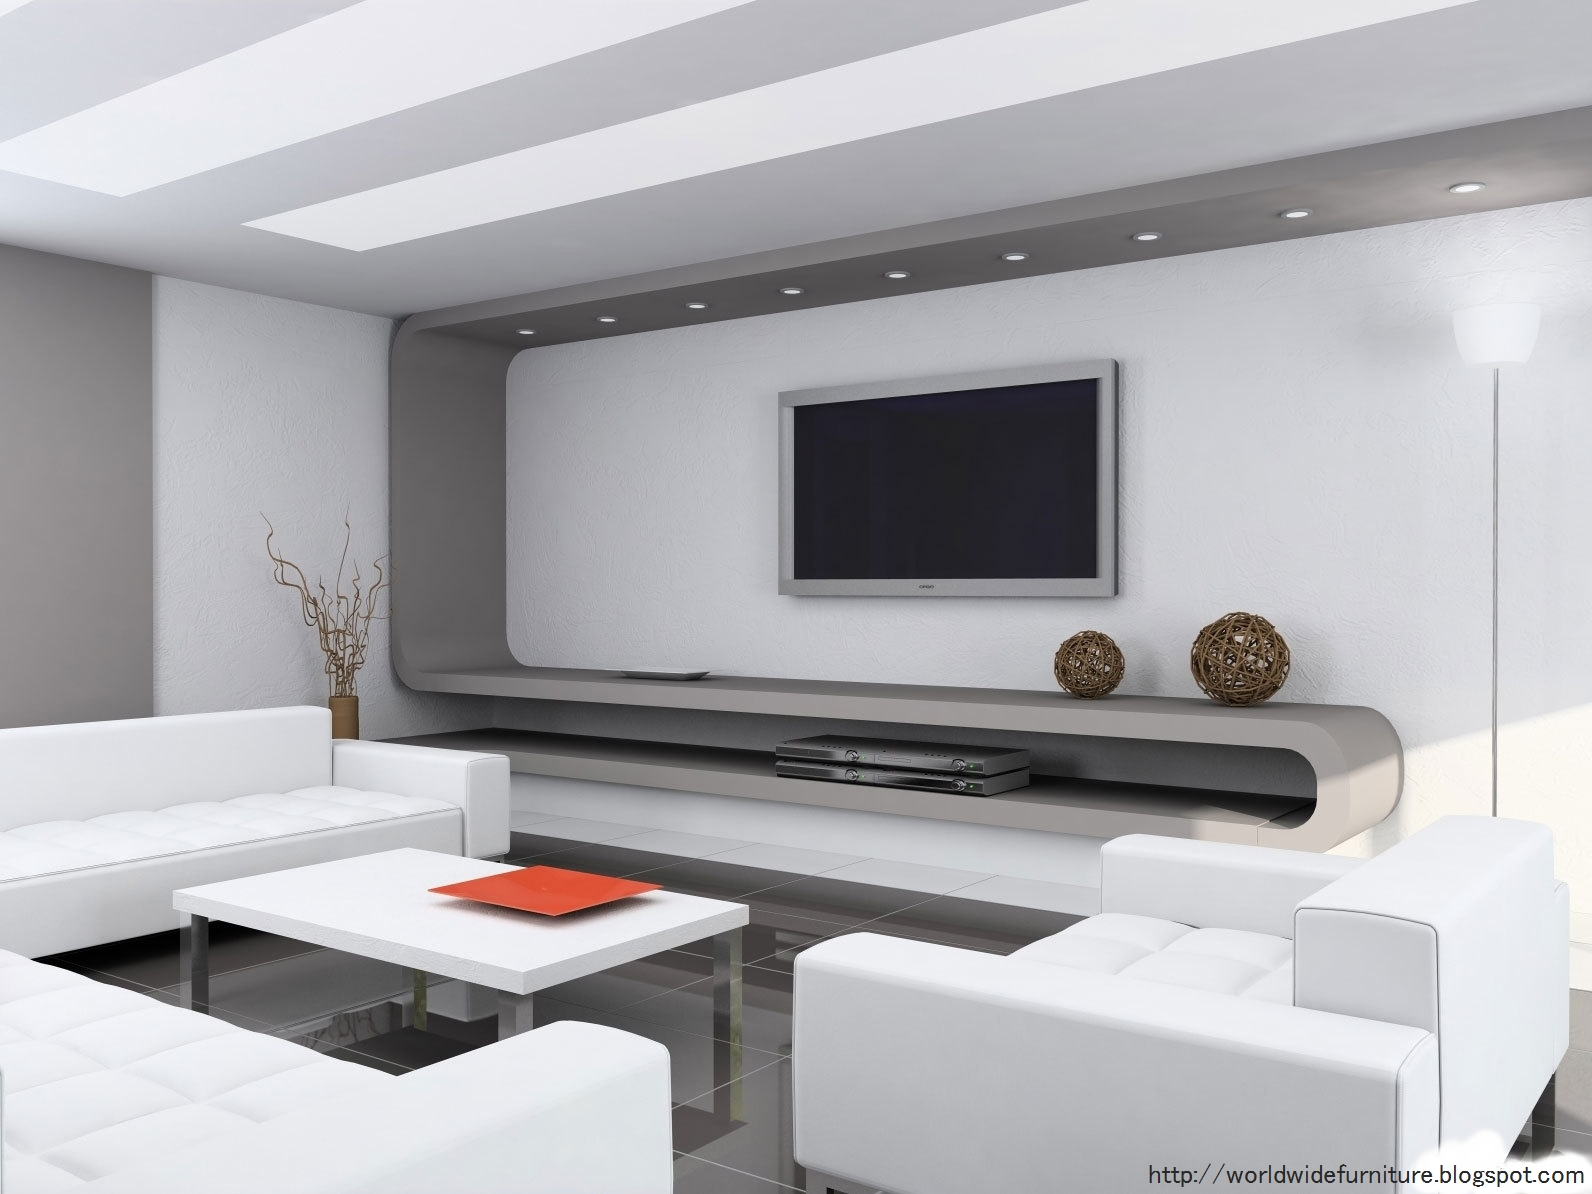 All about home decoration furniture modern minimalist for Modern home furnishings